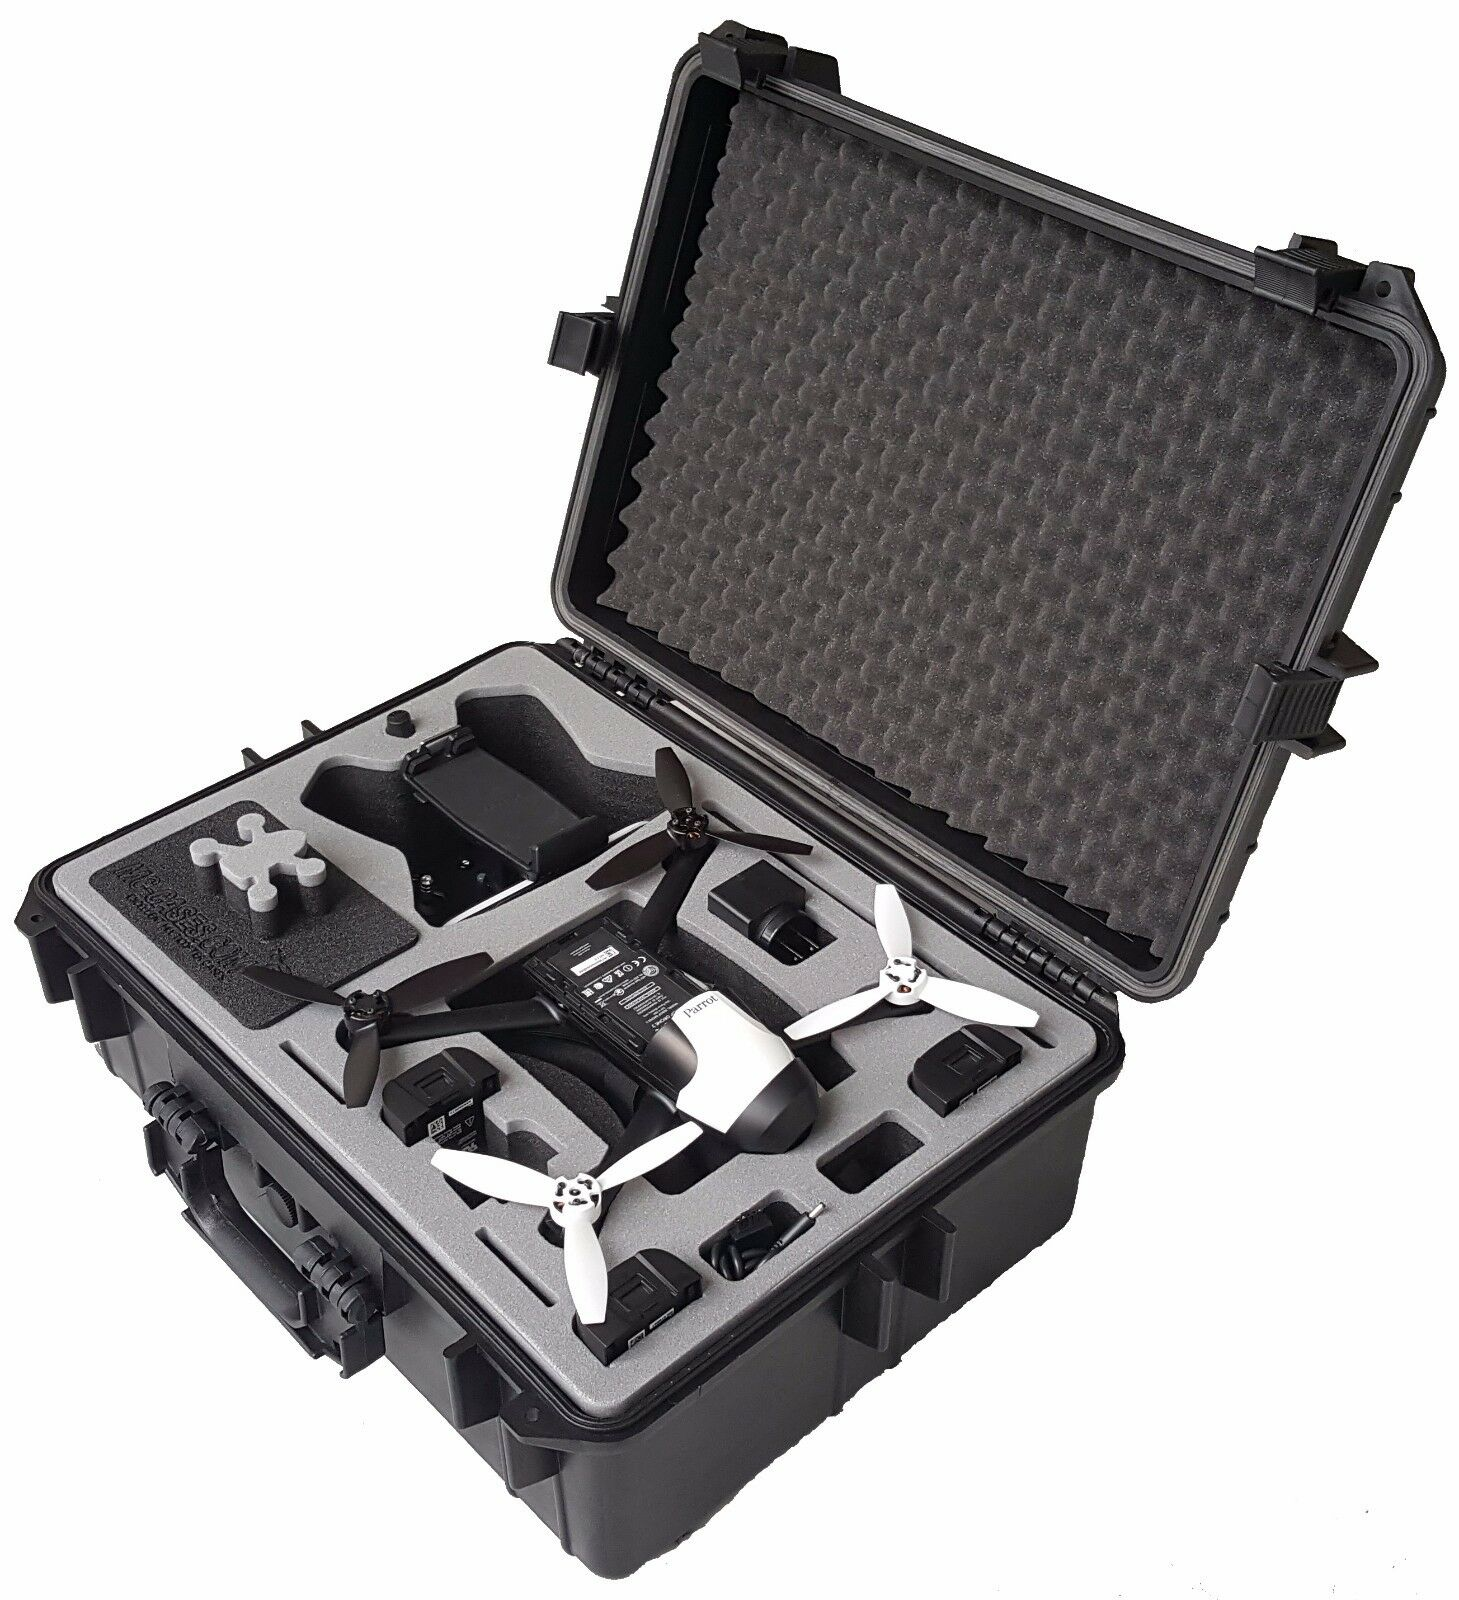 Case Specially for Parred Bebop 2 FPV - Sky Controller 2 and Video Glasses